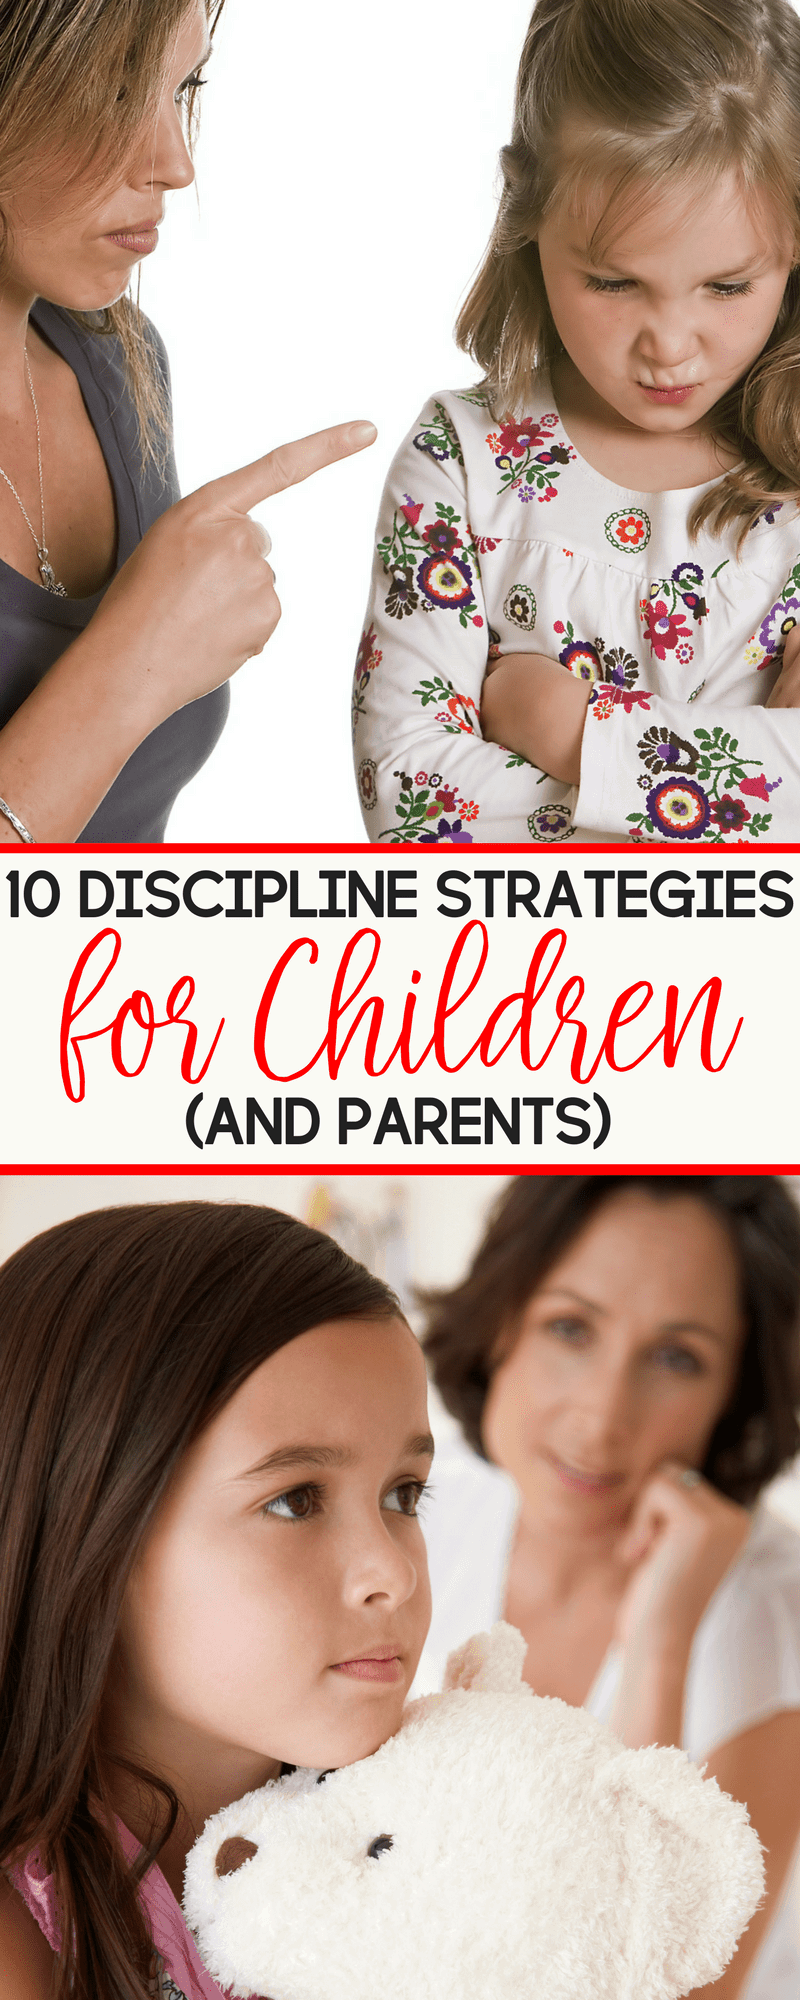 Discipline is one of the most powerful tools we have as a parent. Here are ways to assess our own self-discipline to model to our children.